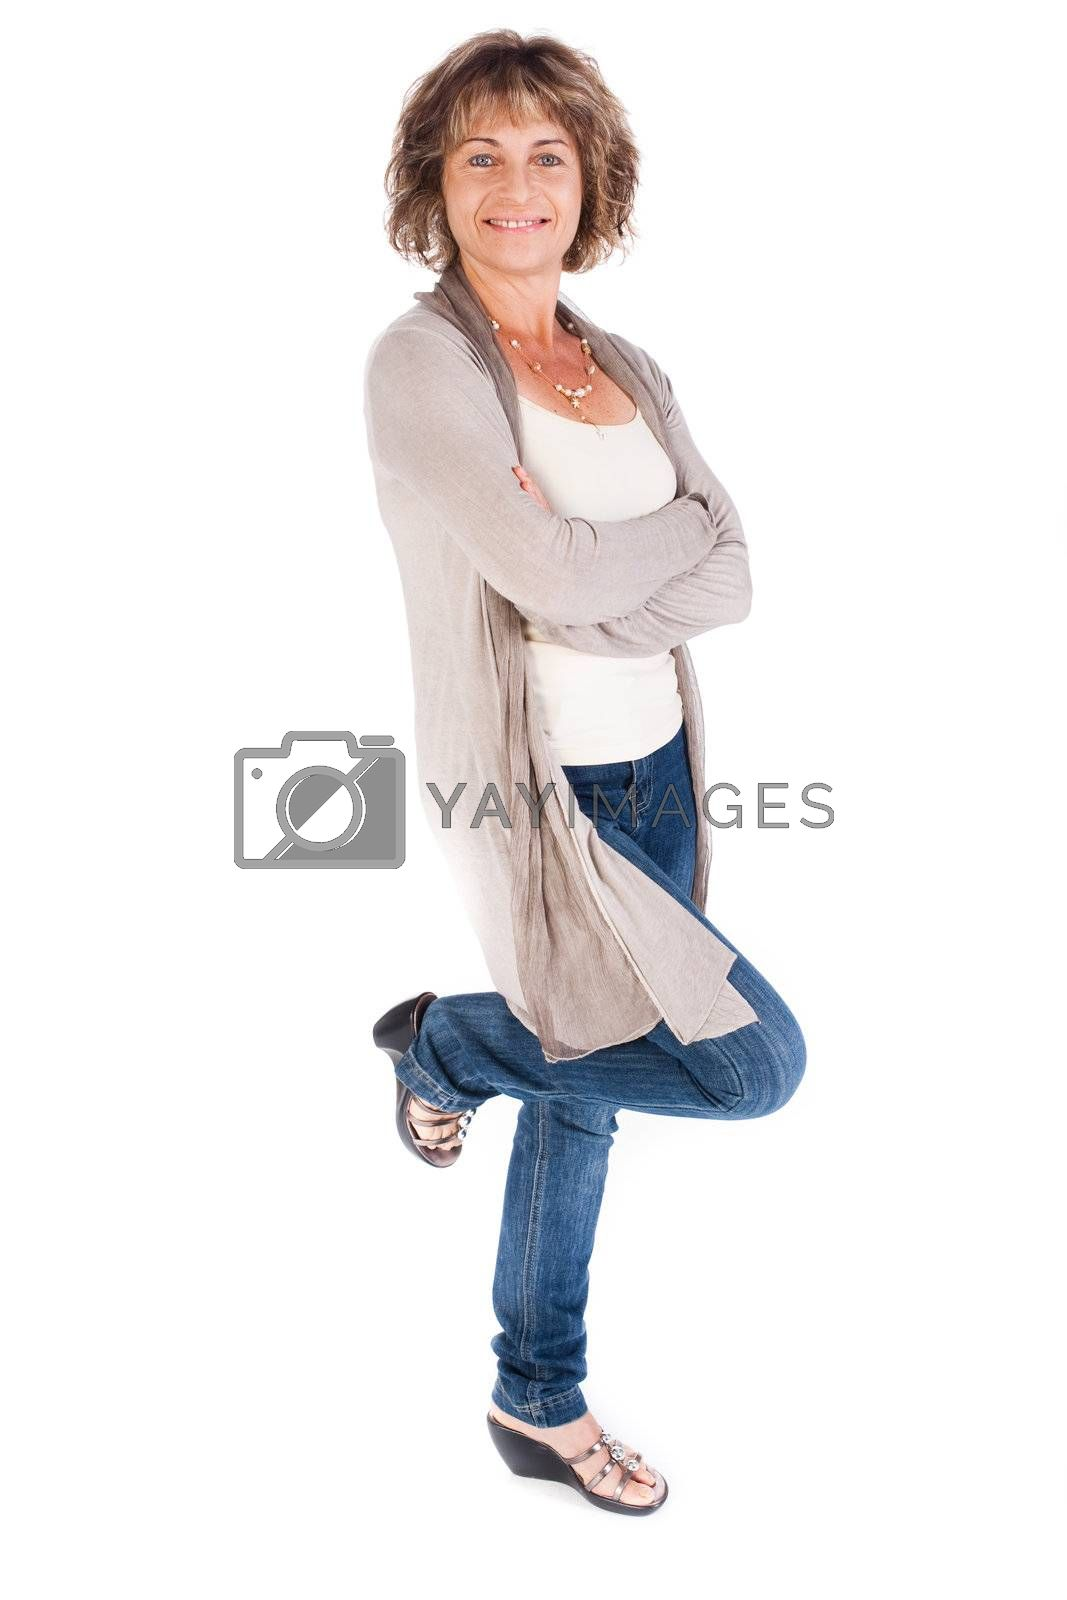 Attractive senior woman posing in style against white background..